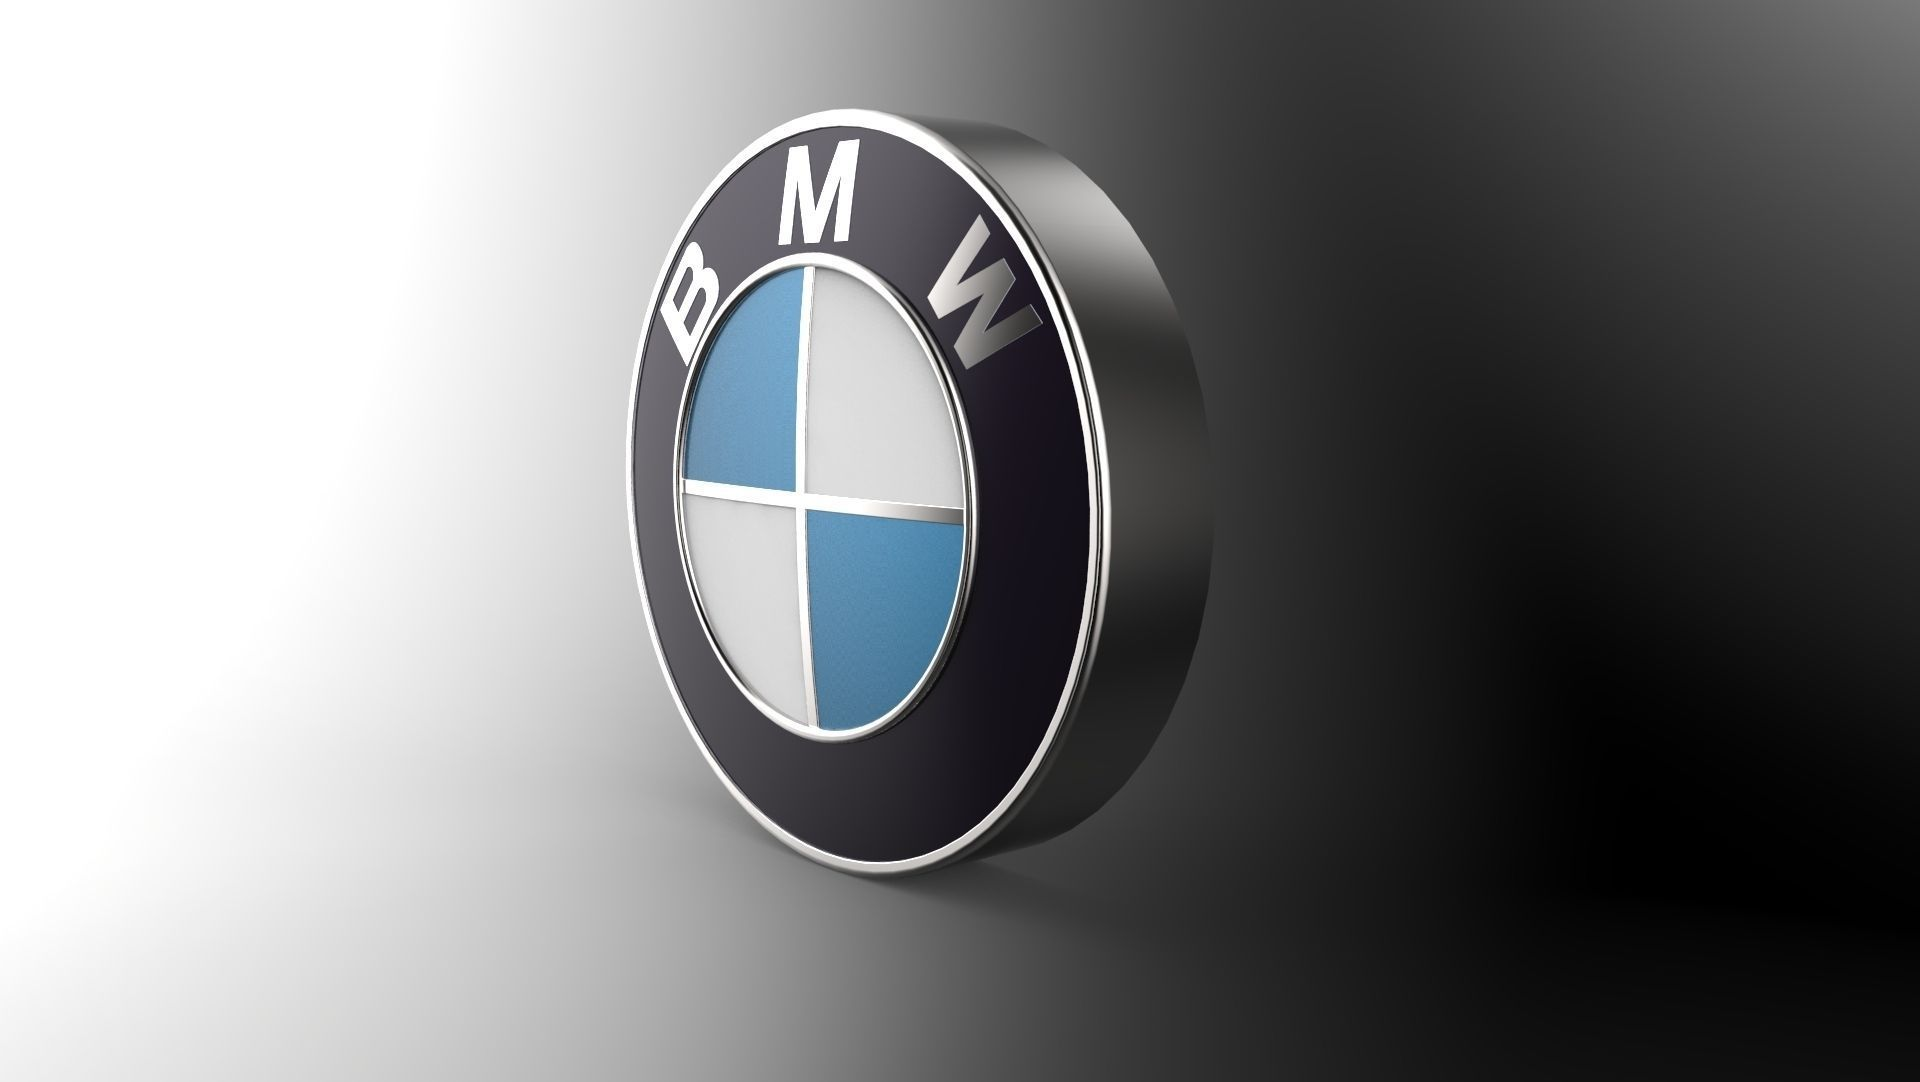 Wallpaper For Pc Desktop Free Download Car Bmw Logo Wallpapers Pictures Images